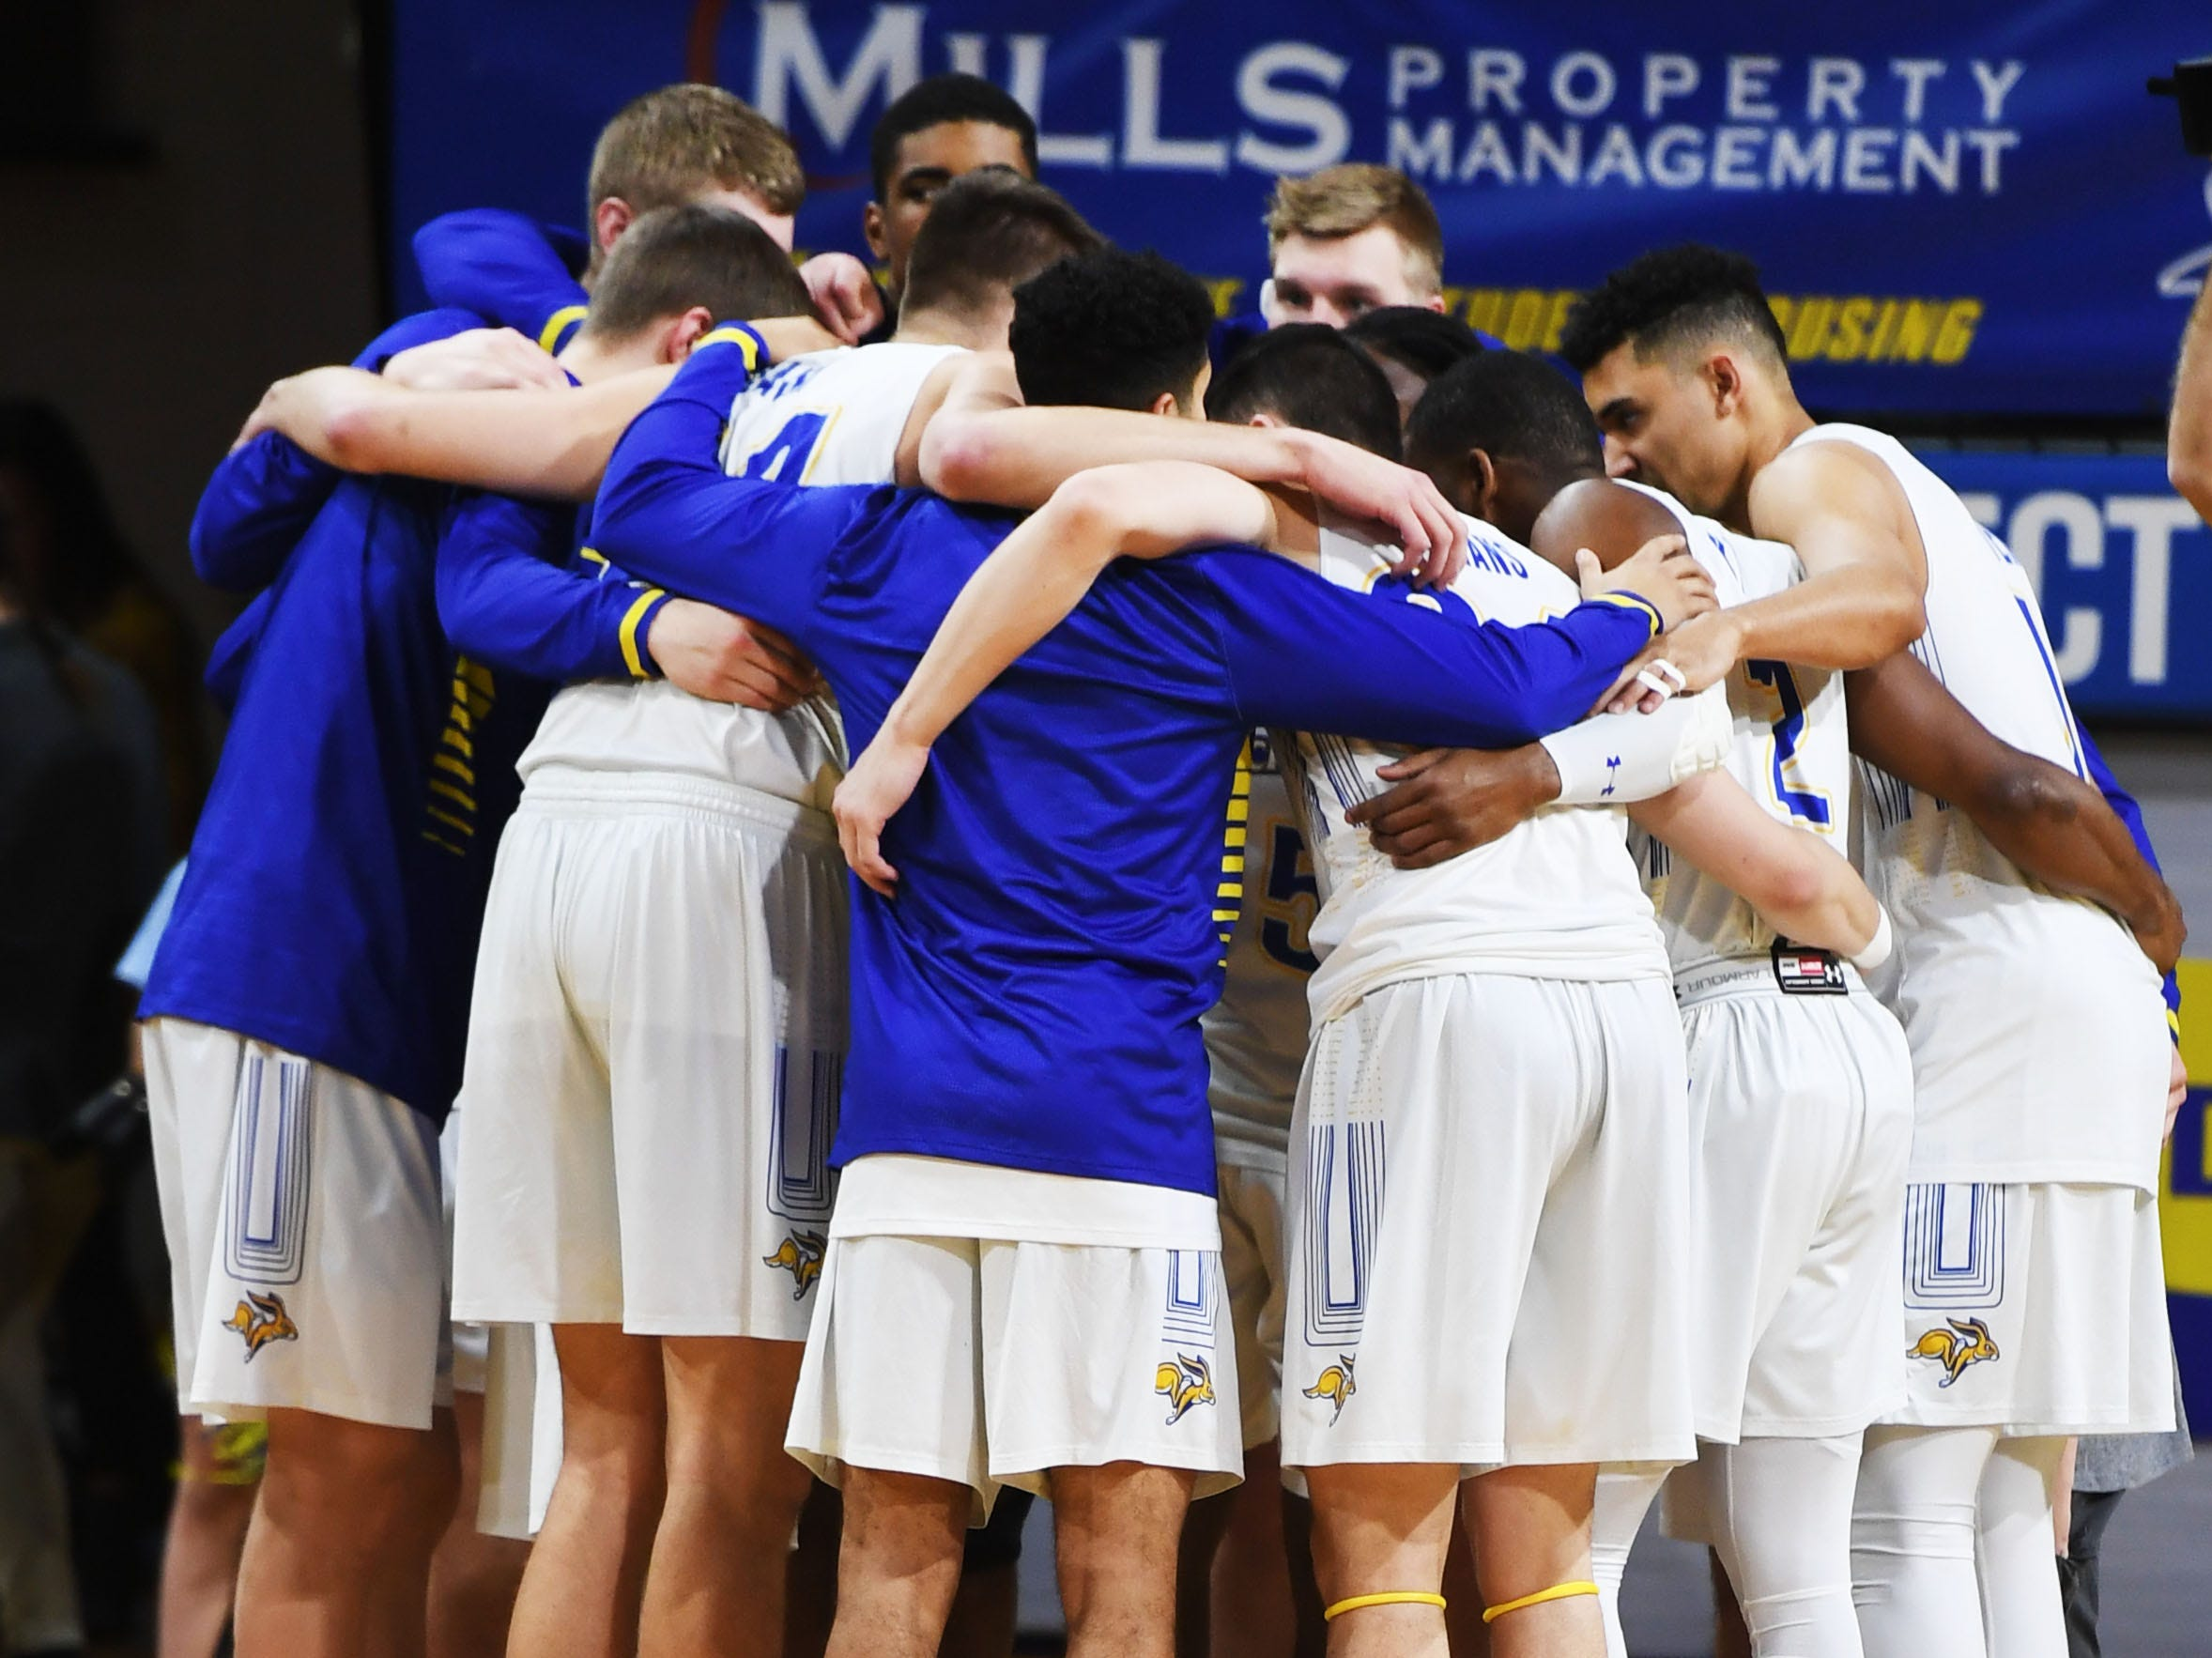 SDSU gets in a huddle before the game against Omaha Saturday, Jan. 26, at Frost Arena in Brookings.